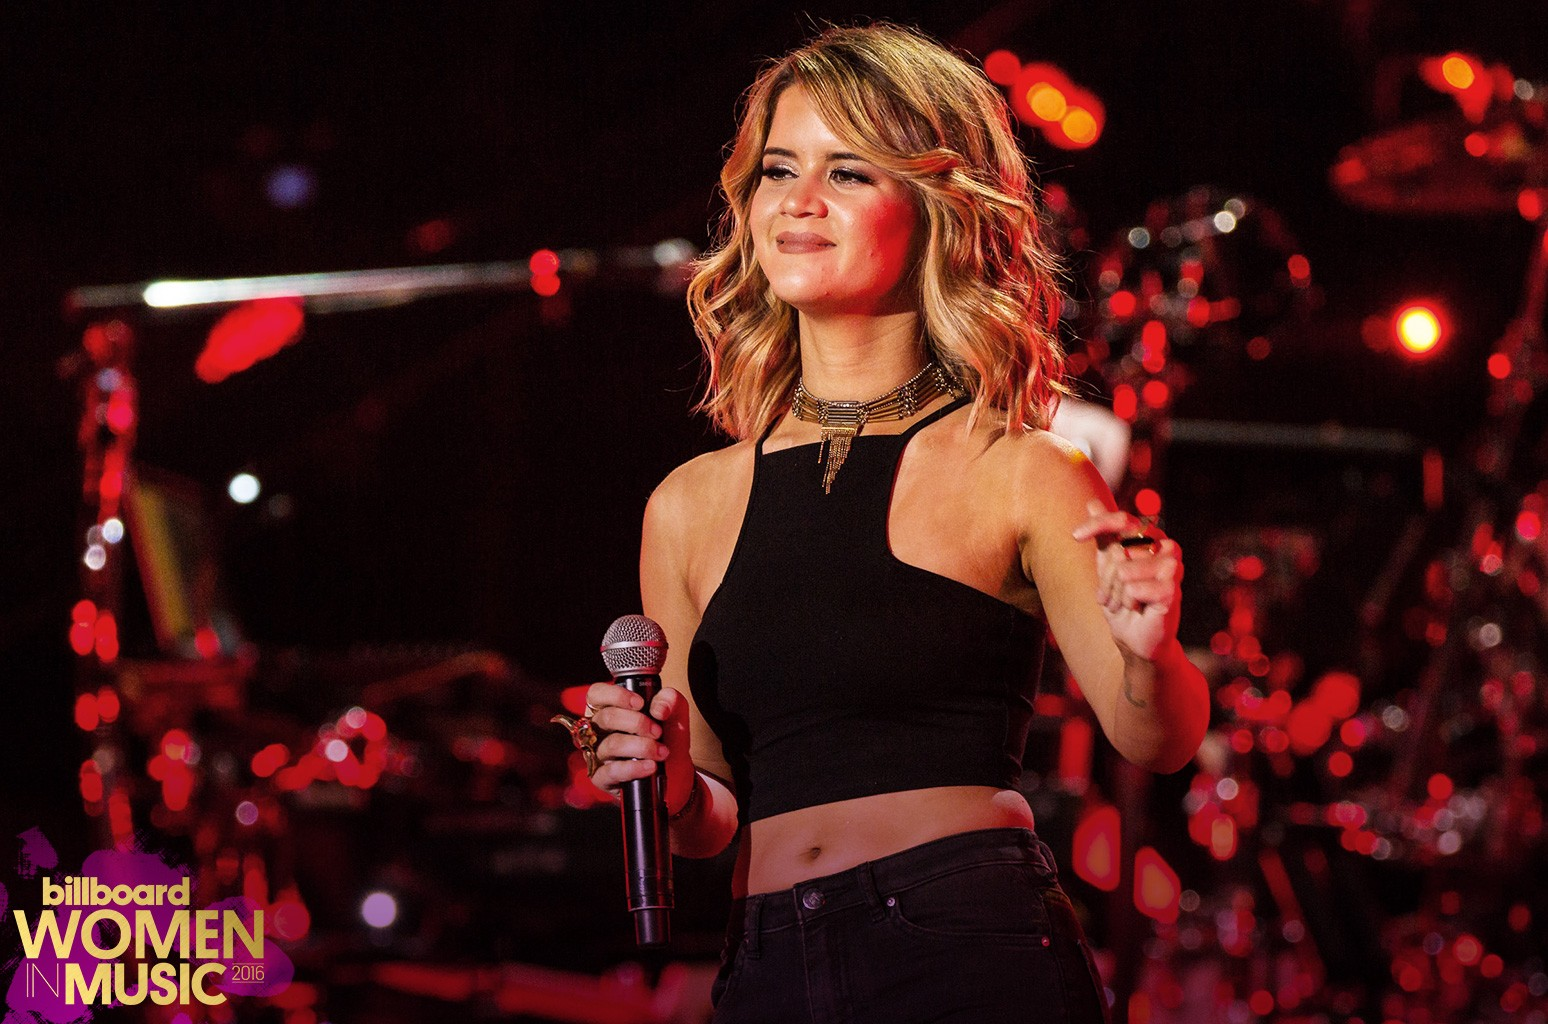 Maren Morris performs during the 2016 CMA Music Festival at Nissan Stadium on June 9, 2016 in Nashville, Tenn.